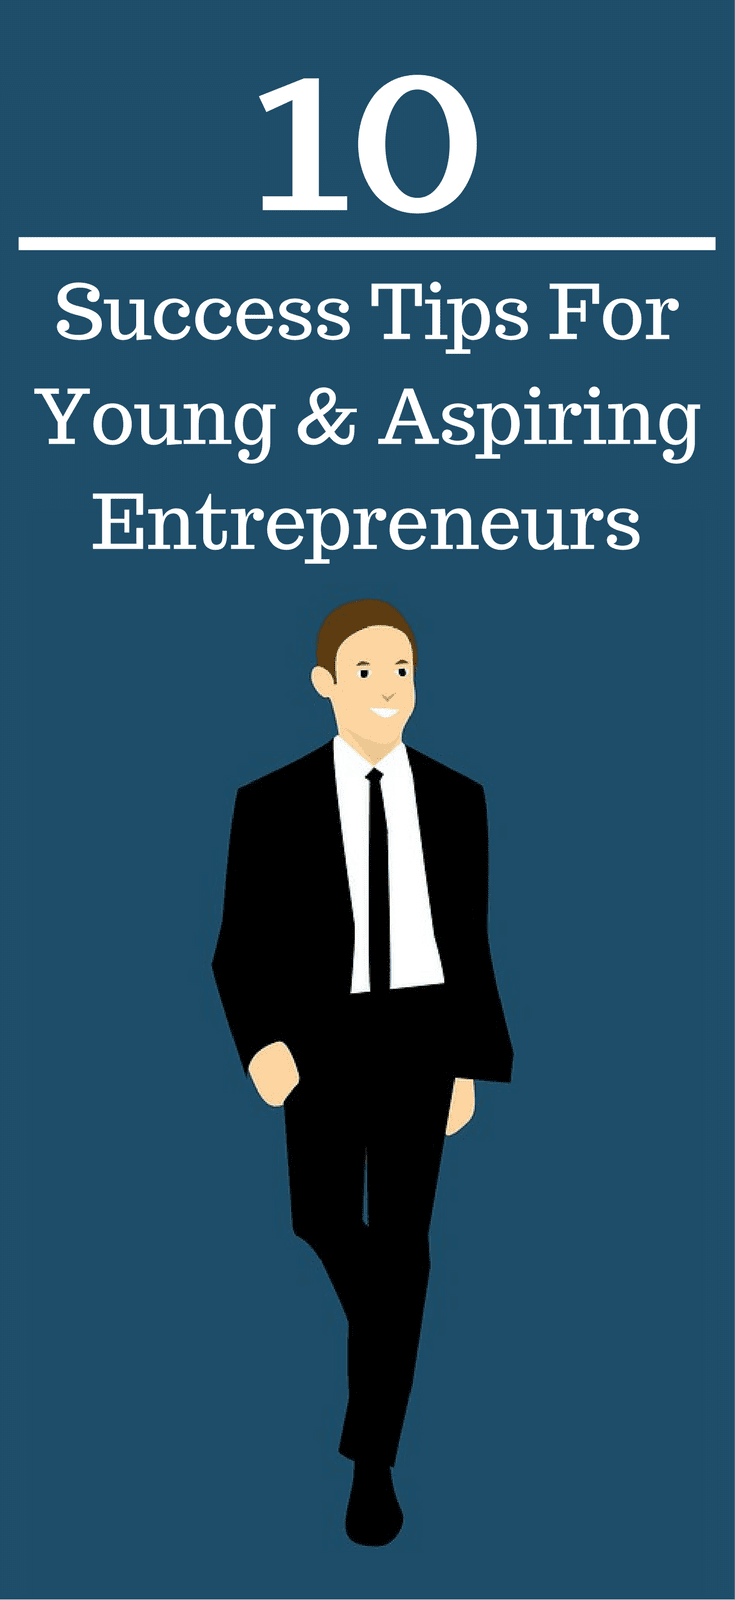 10 Success Tips For Young And Aspiring Entrepreneurs